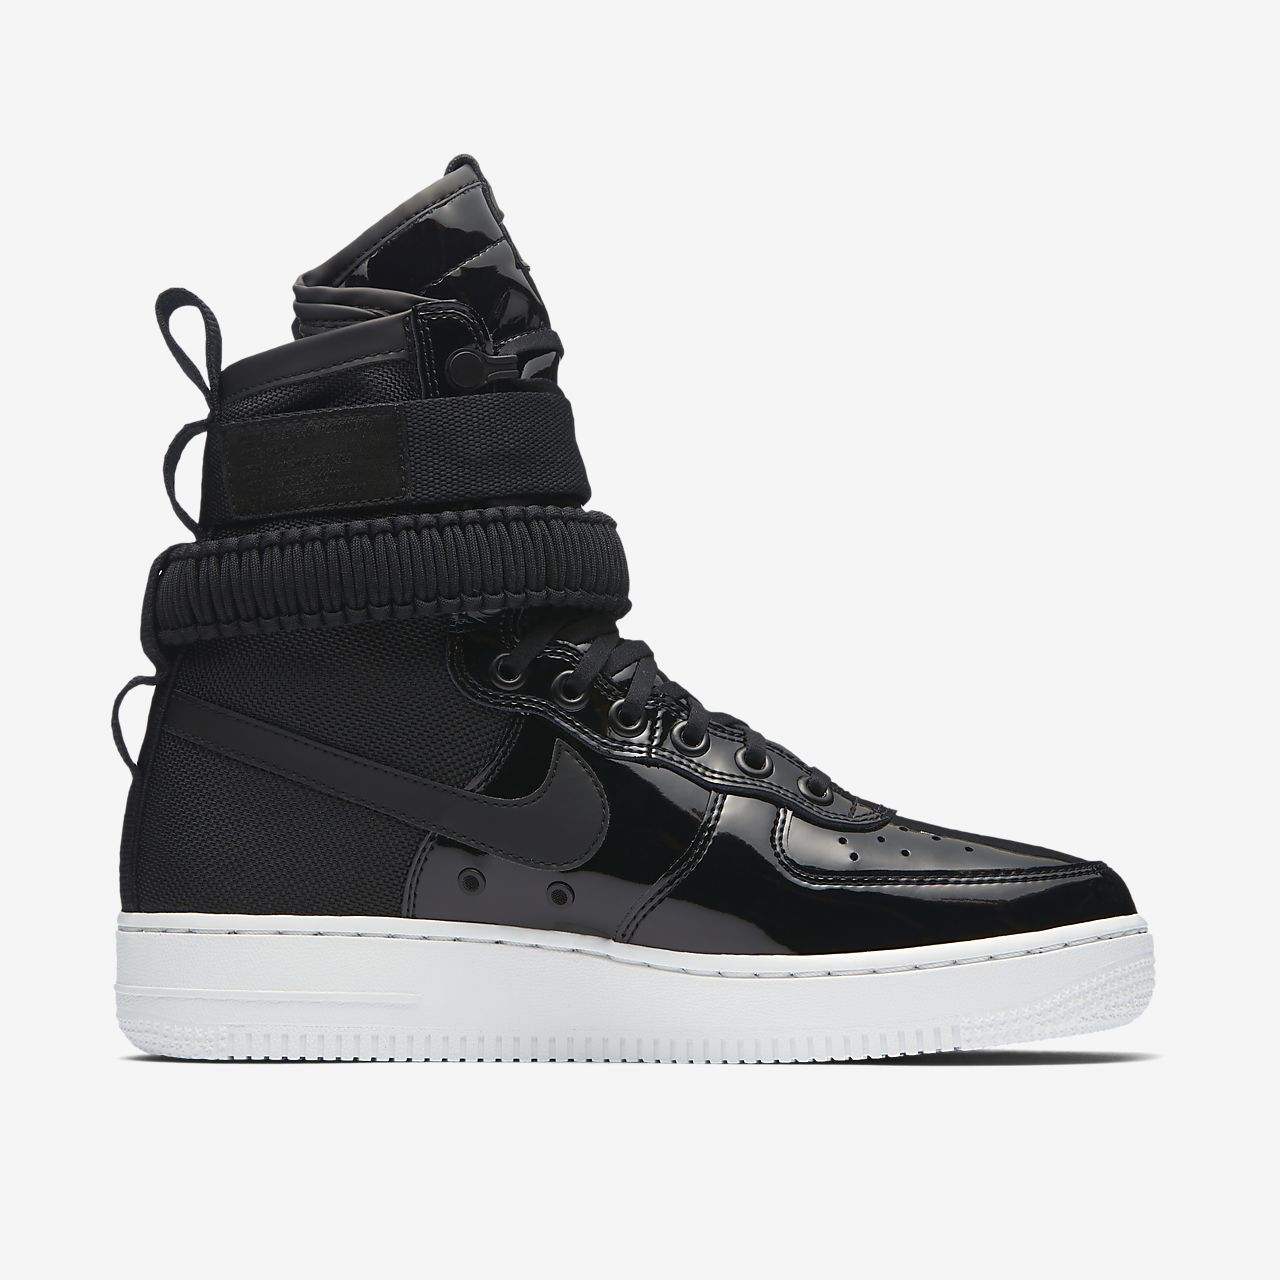 sf air force 1 black nz